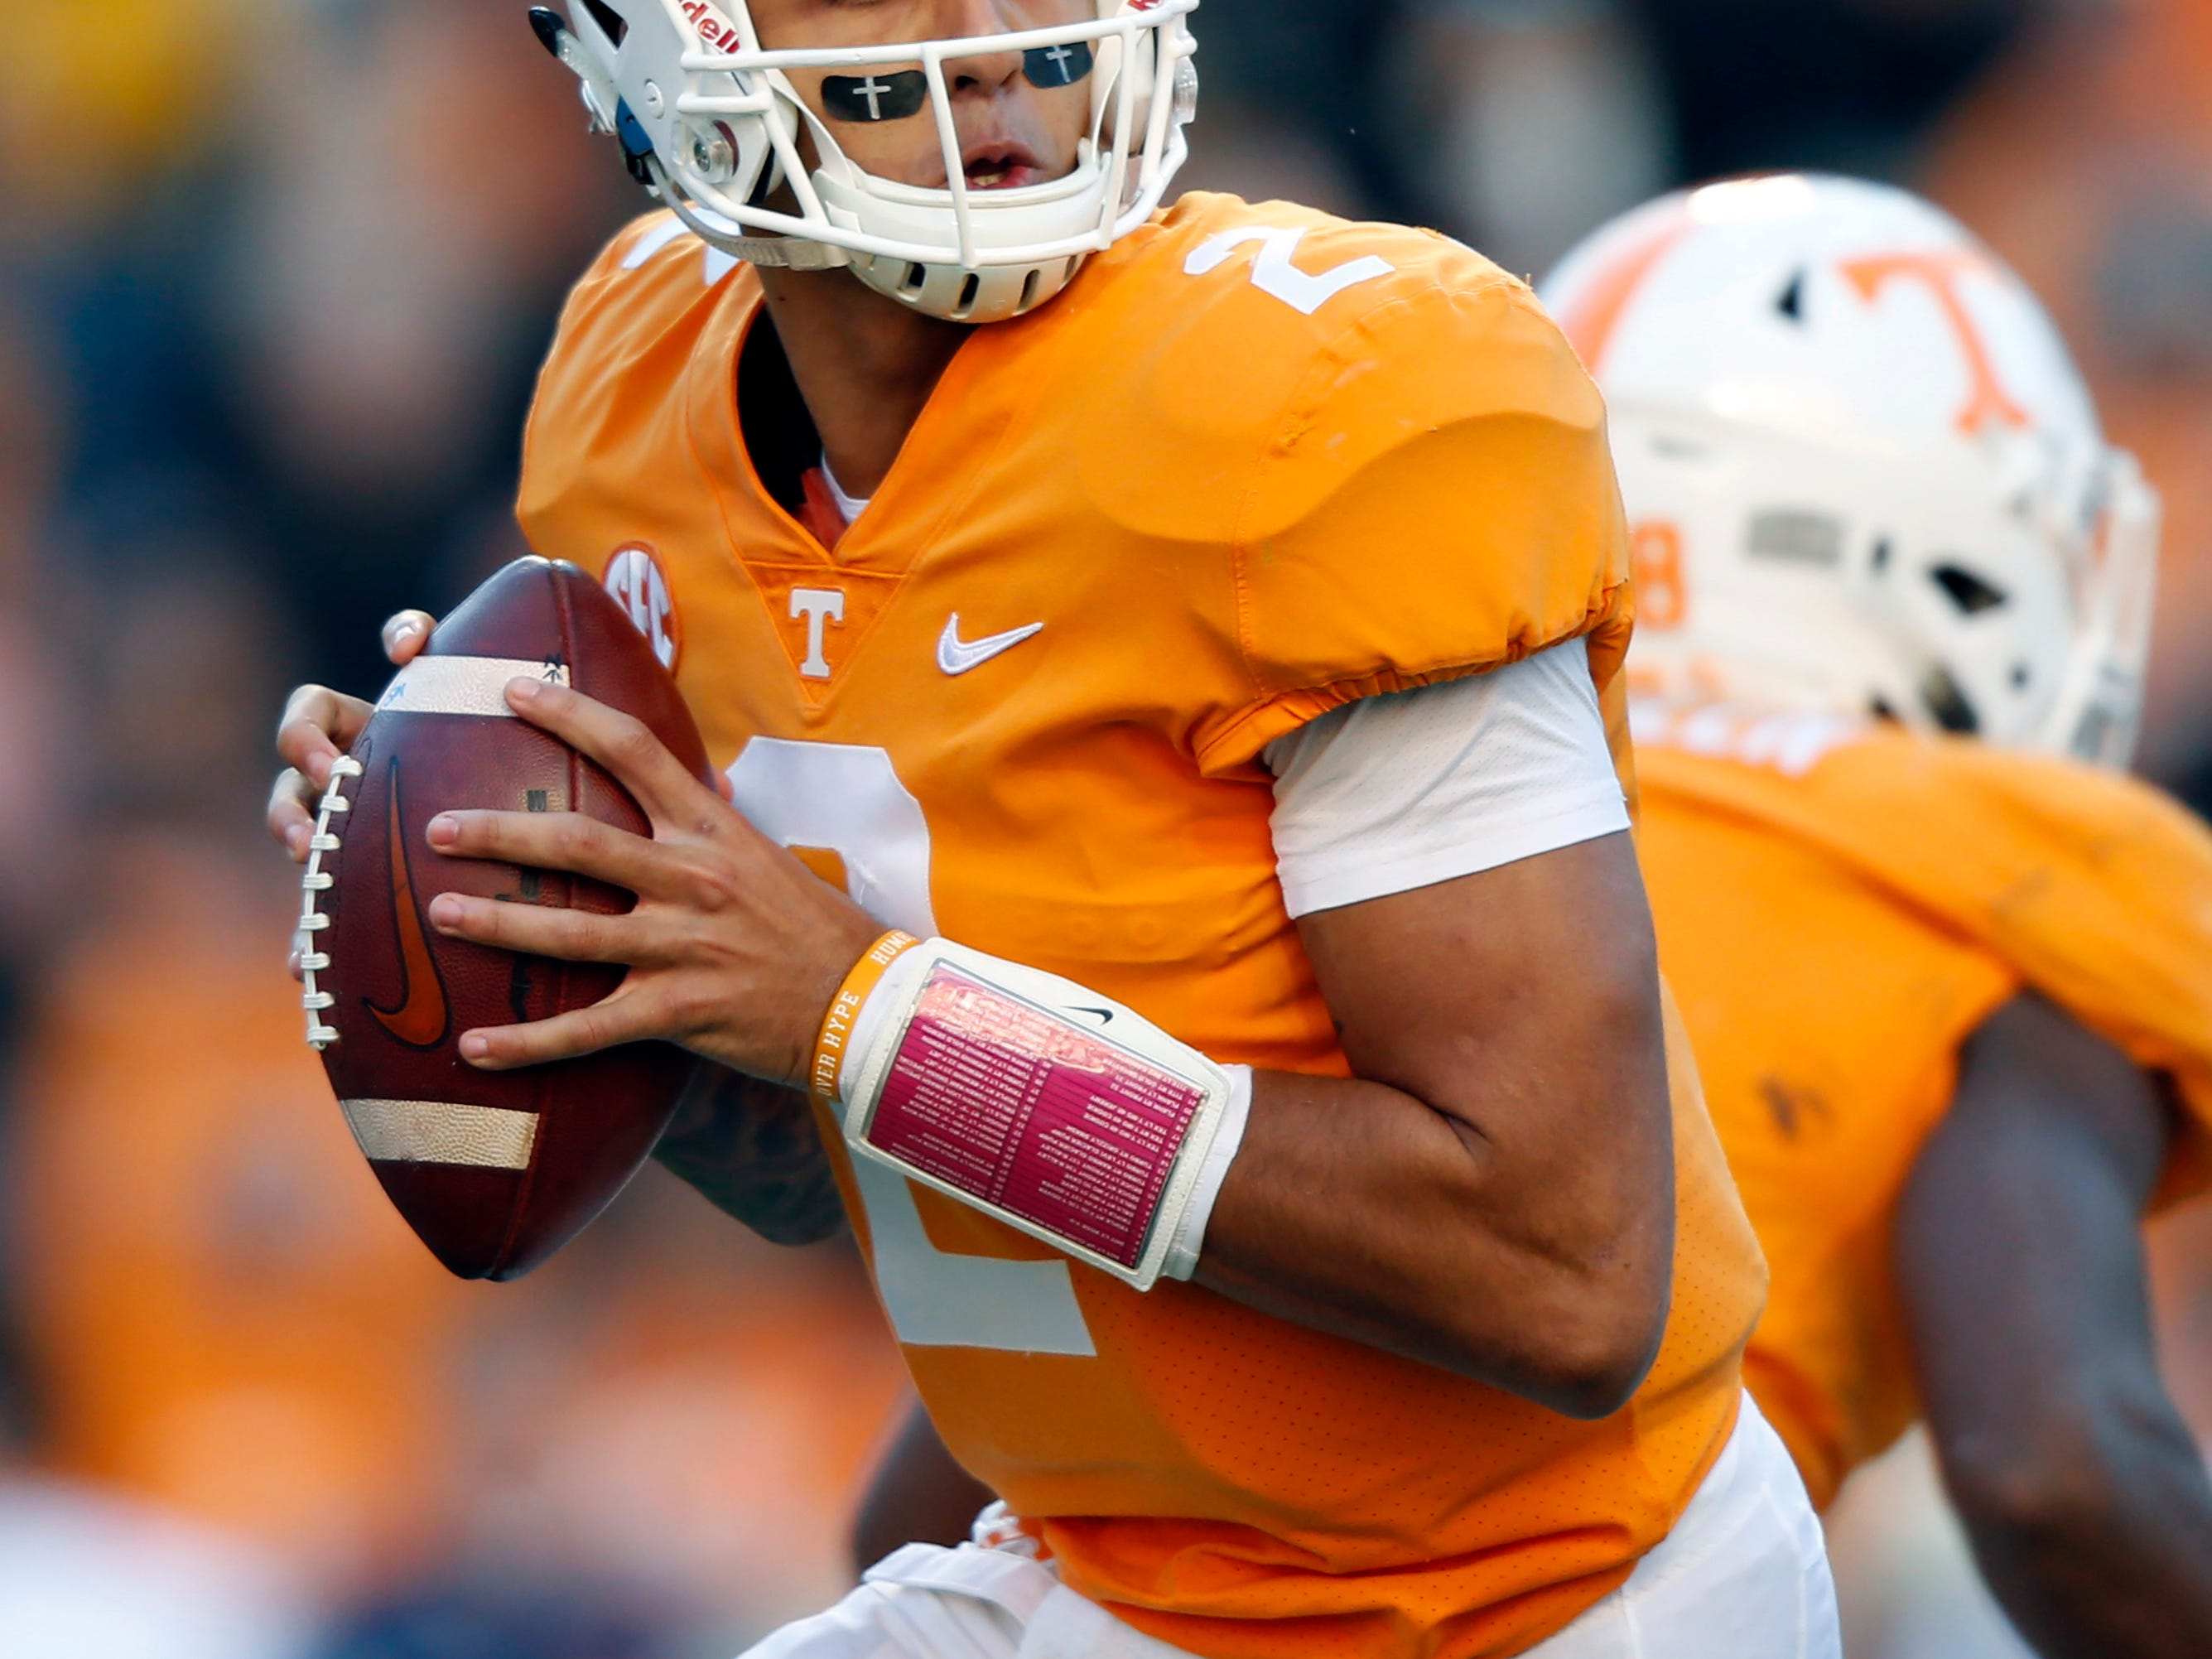 Tennessee QB Guarantano's status 'day to day' for Vandy ...